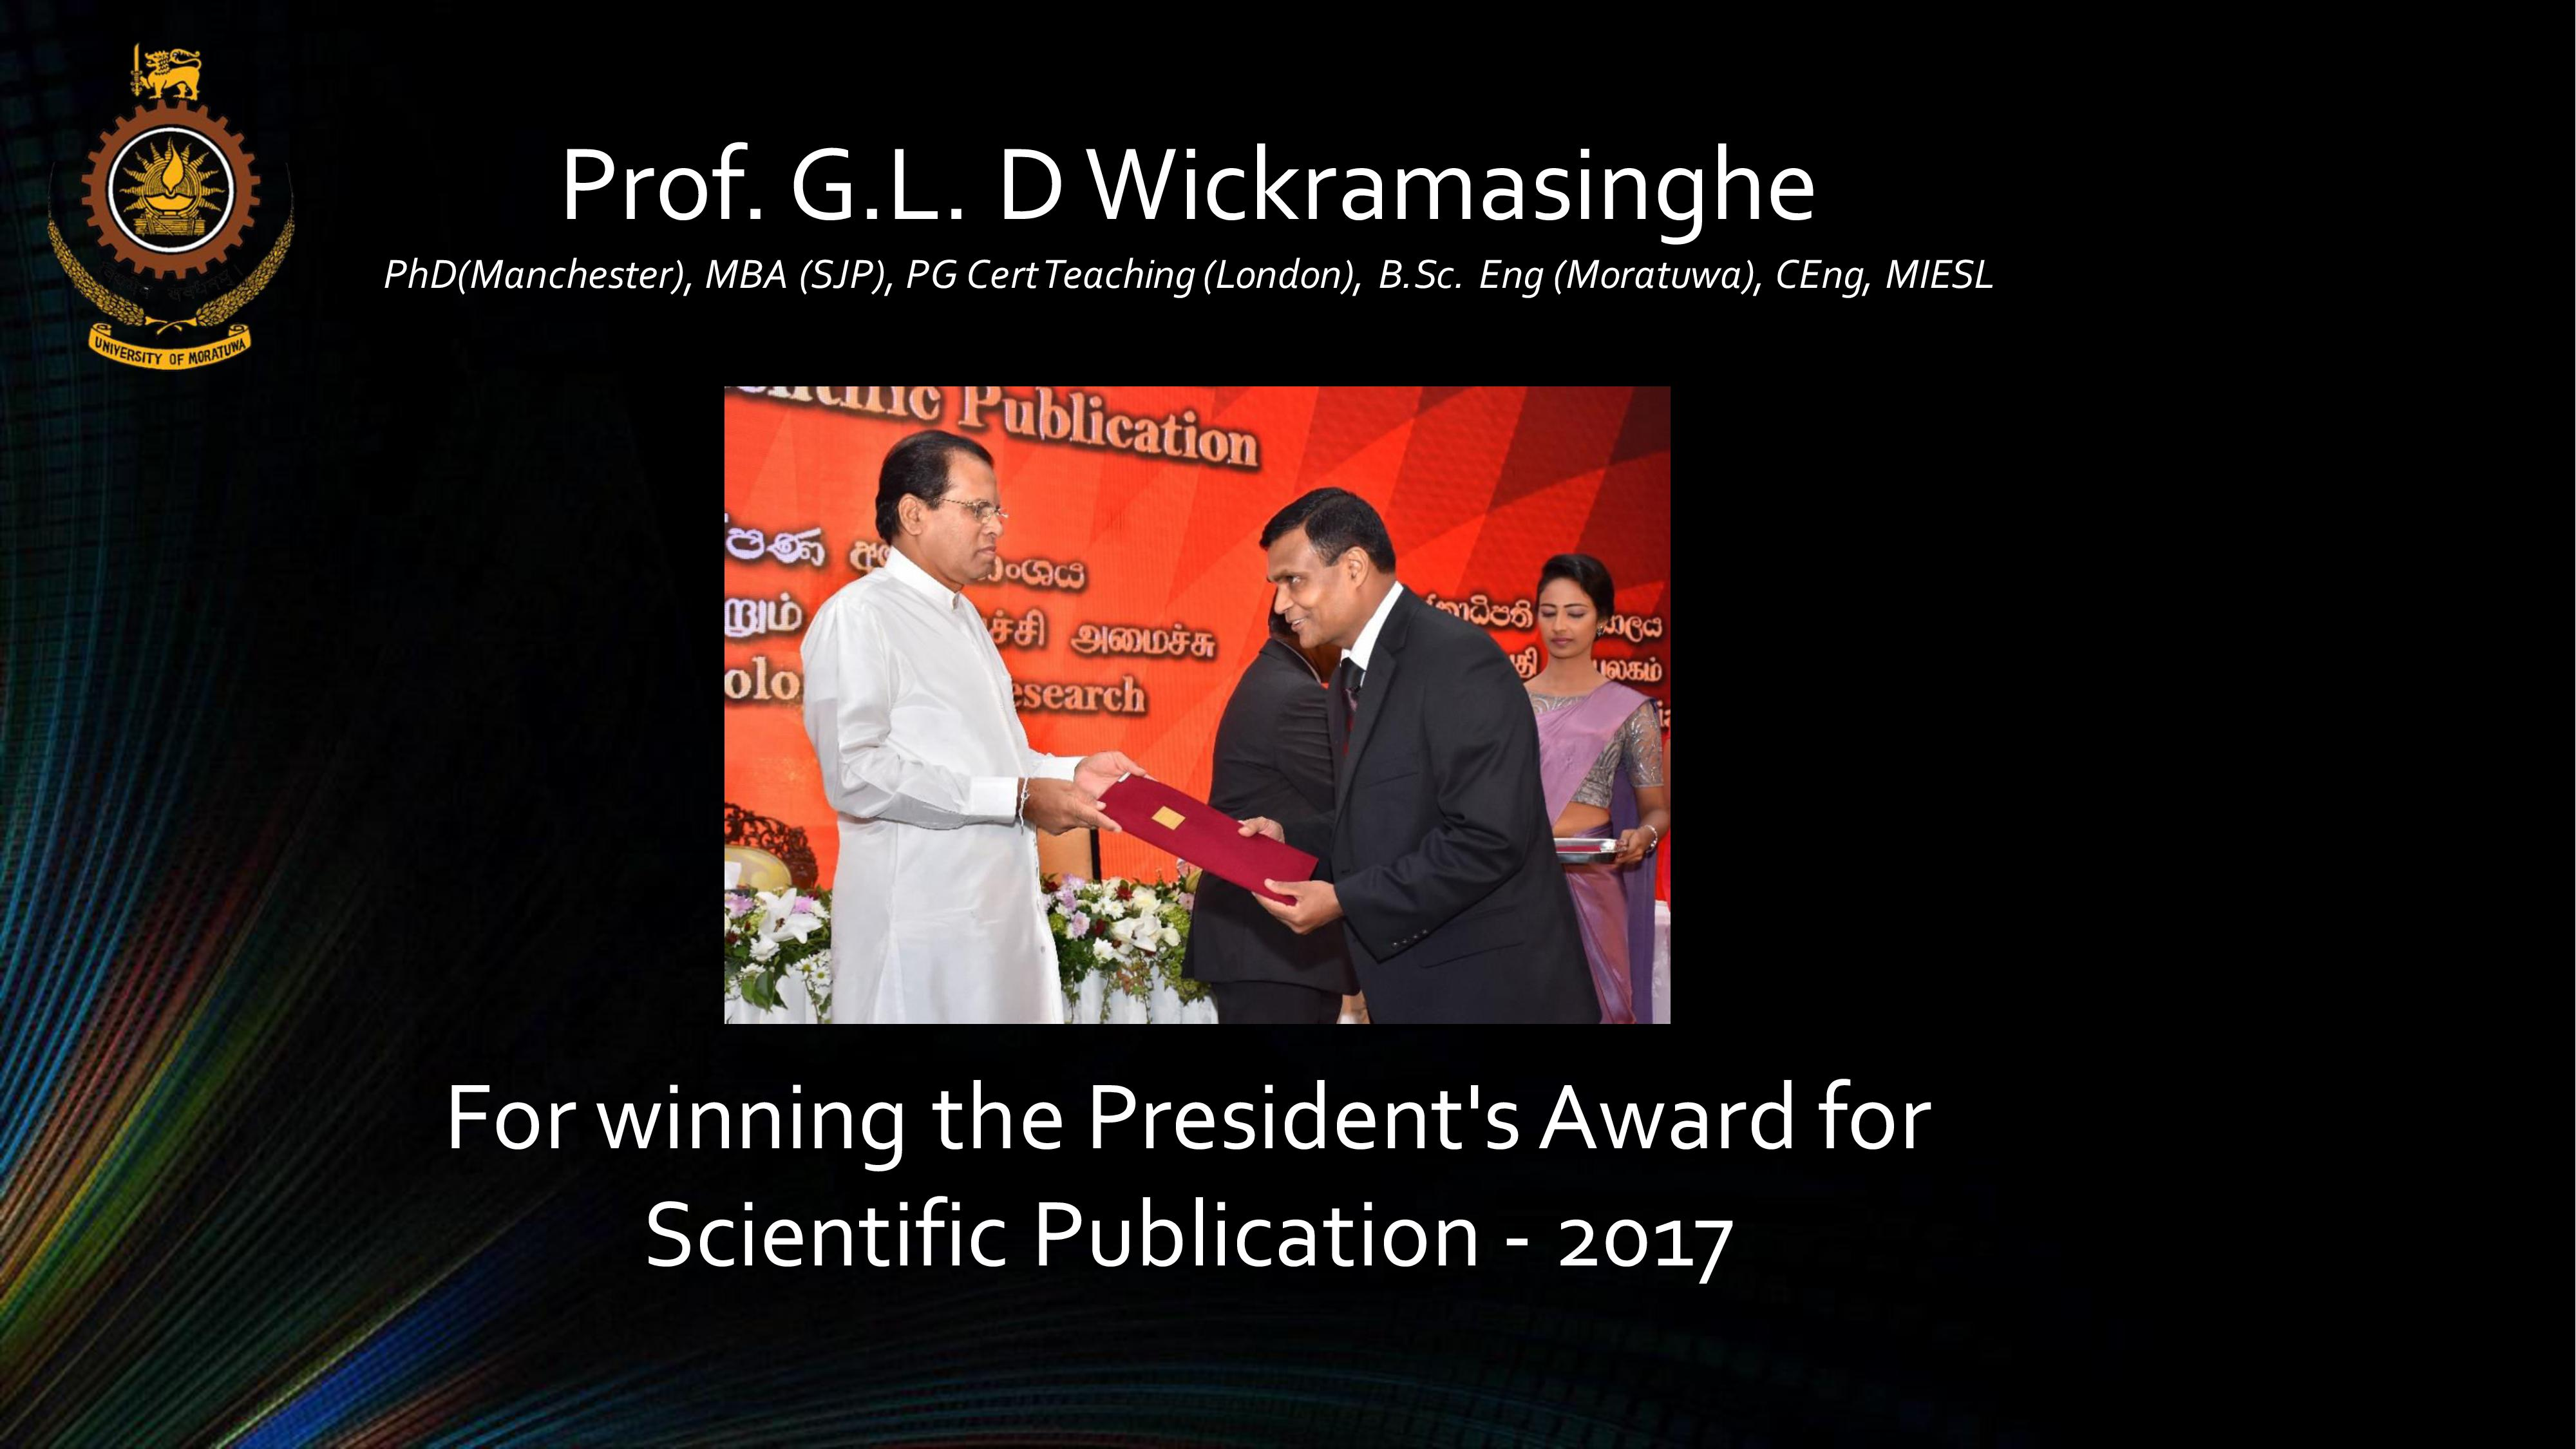 Winner of the President's Award for Scientific Publication 2017